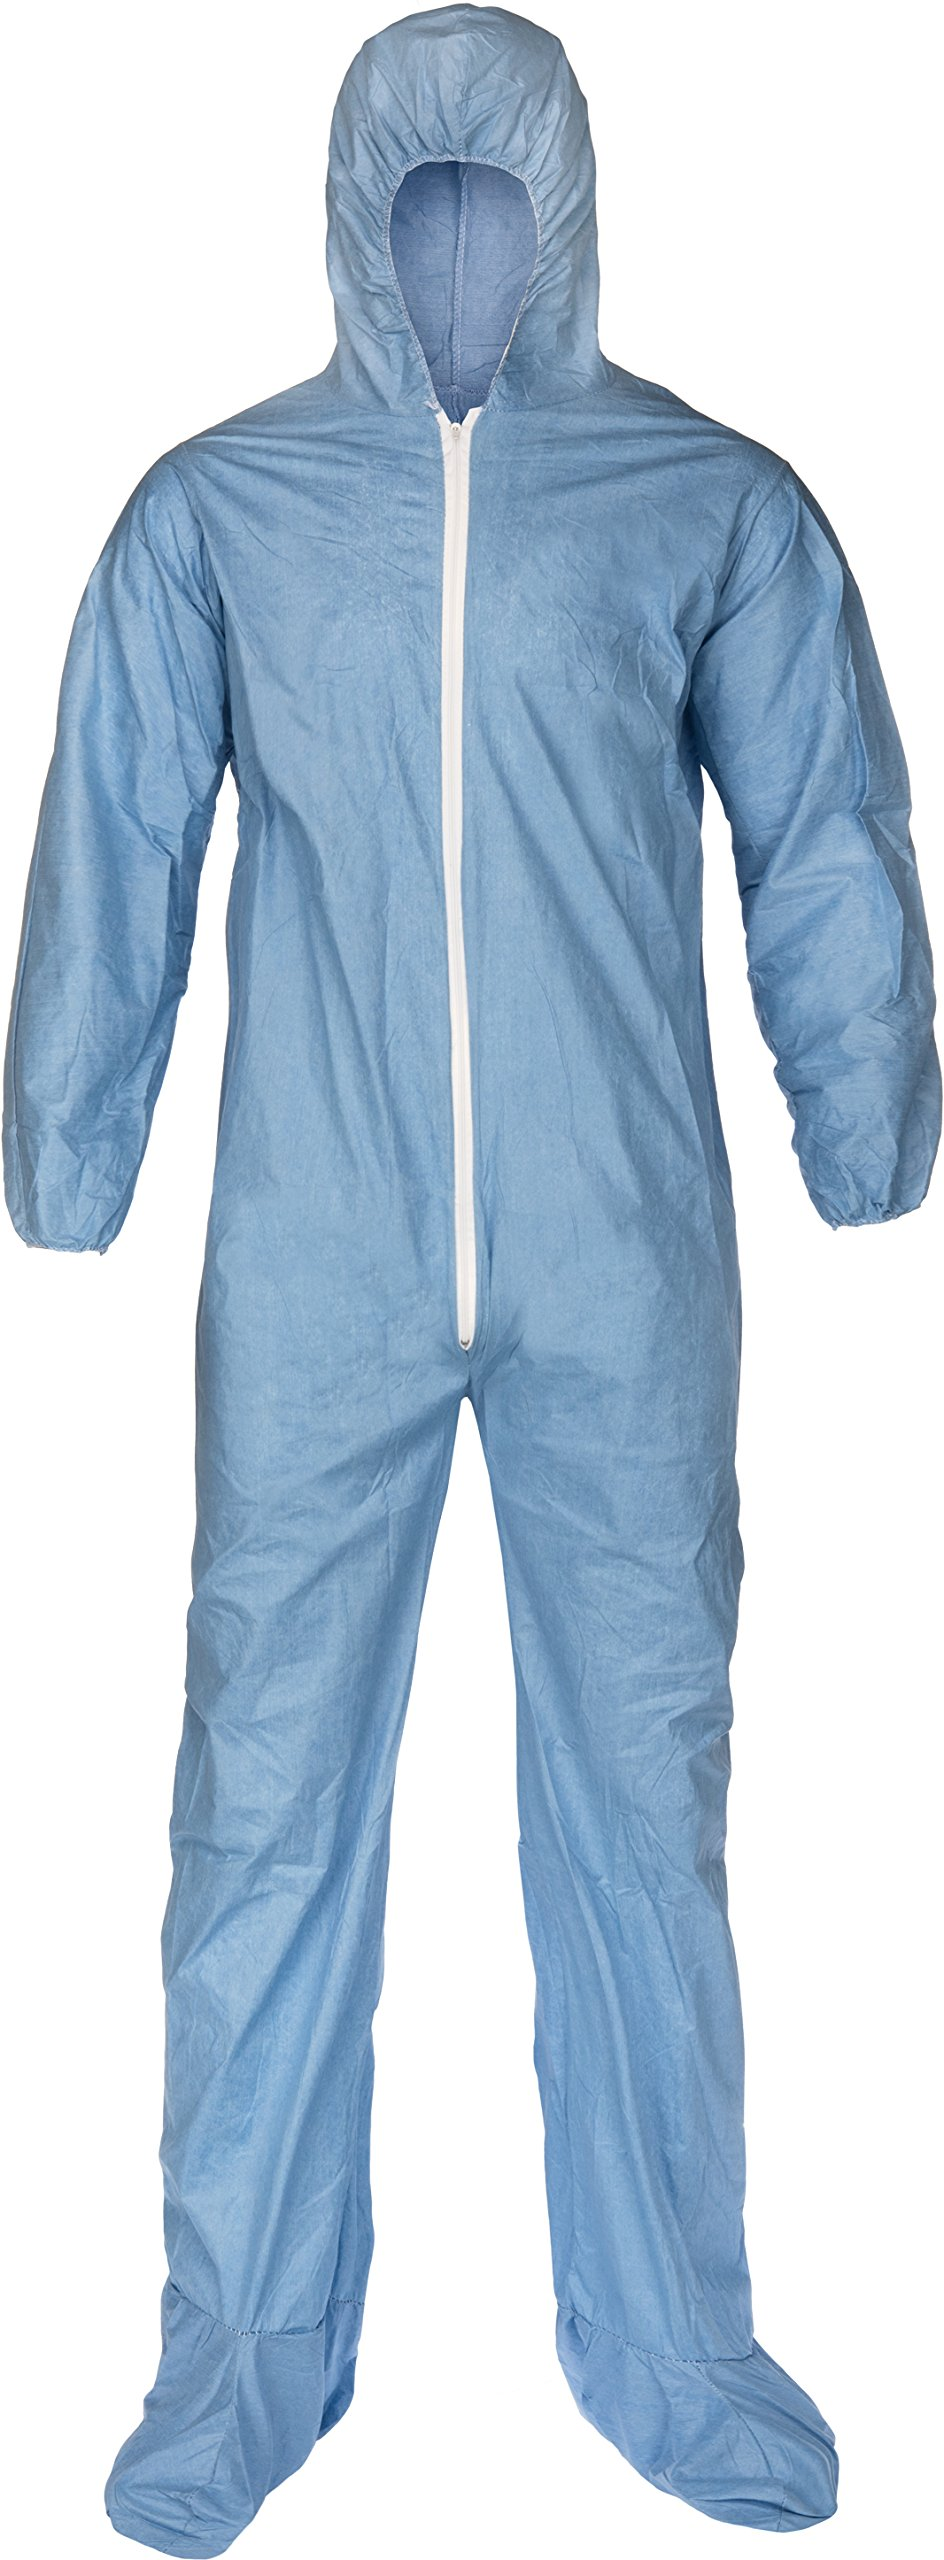 Lakeland Pyrolon Plus 2 Flame-Resistant Disposable Coverall with Hood and Boots, Blue, 3X-Large, Elastic Cuff (Case of 25)